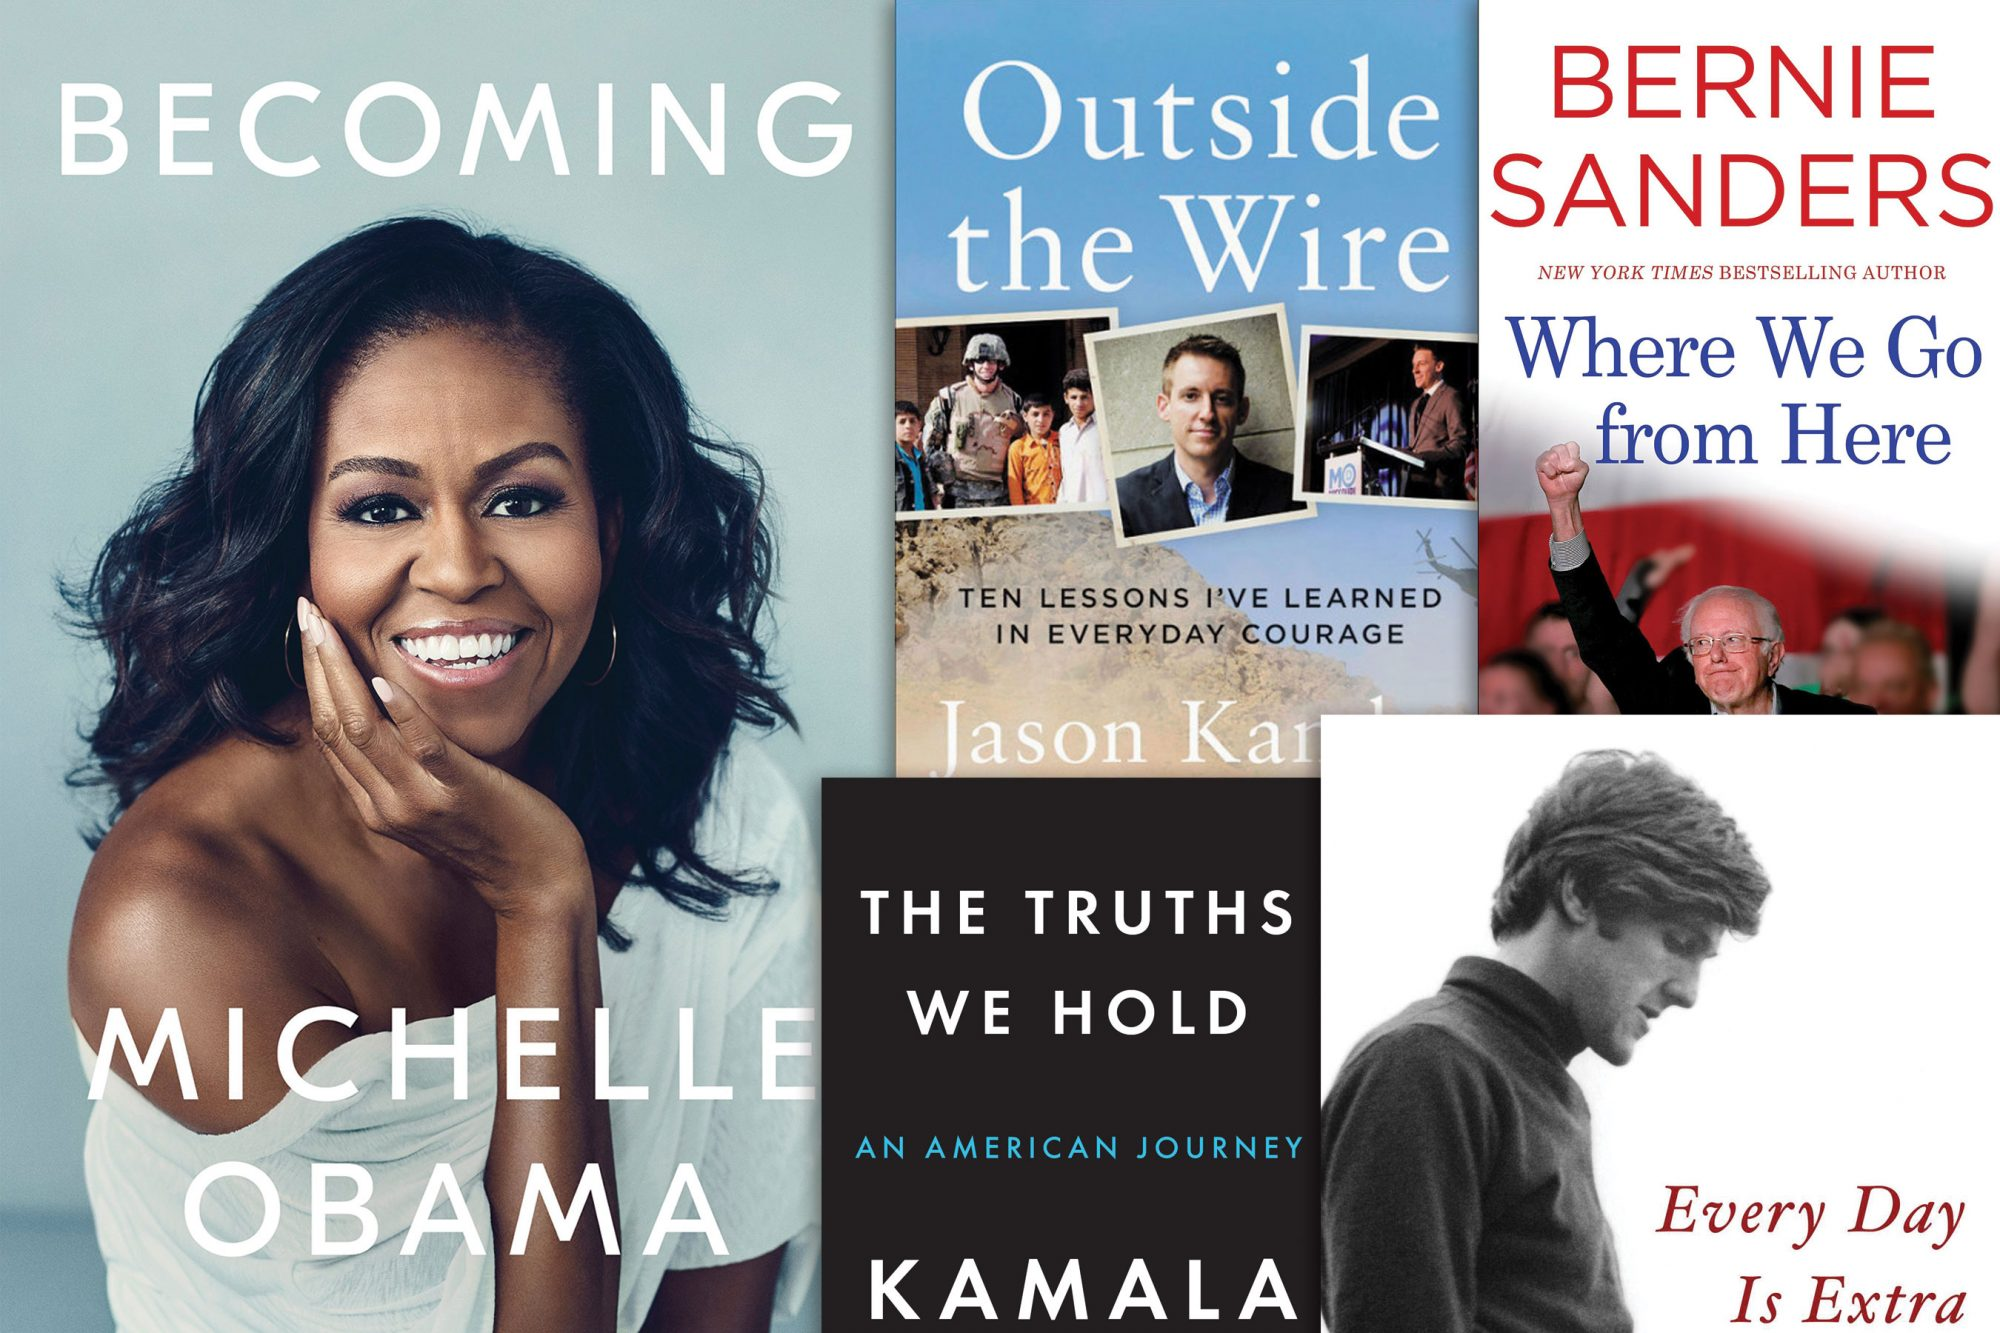 Upcoming books from 2020 candidates